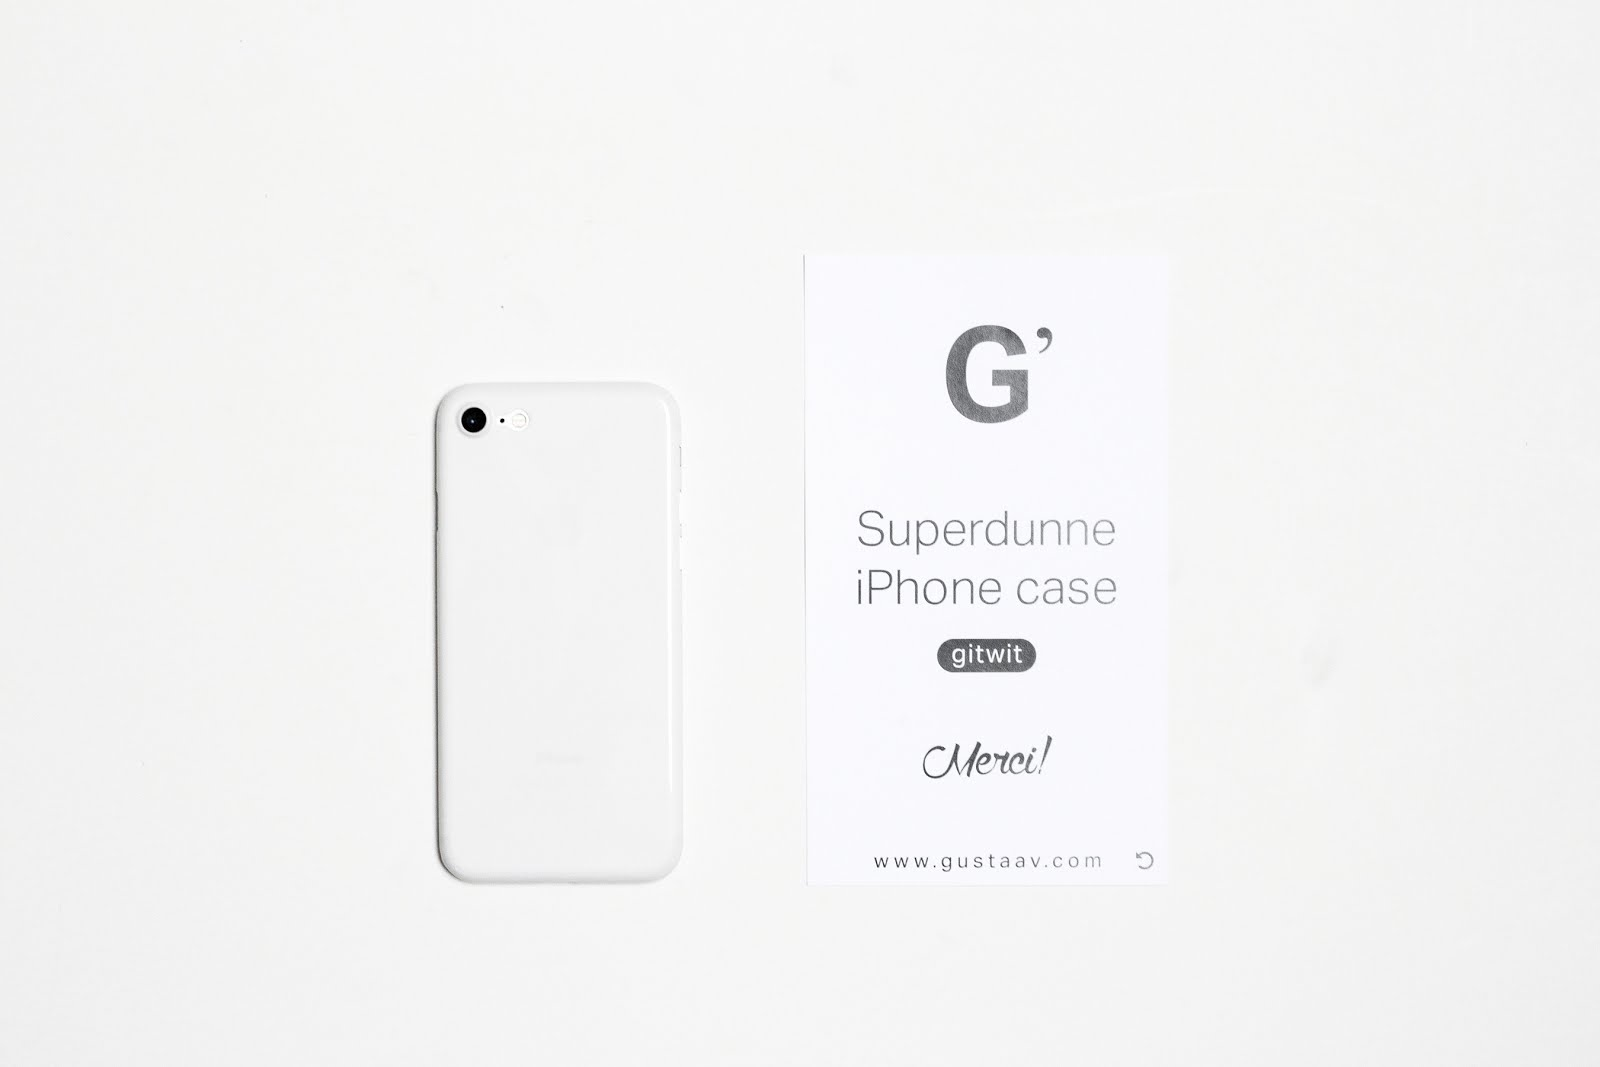 Iphone 7 case, minimal, invisible, white, gitwit, super thin, super dun, minimalisten, effen, Gustaav